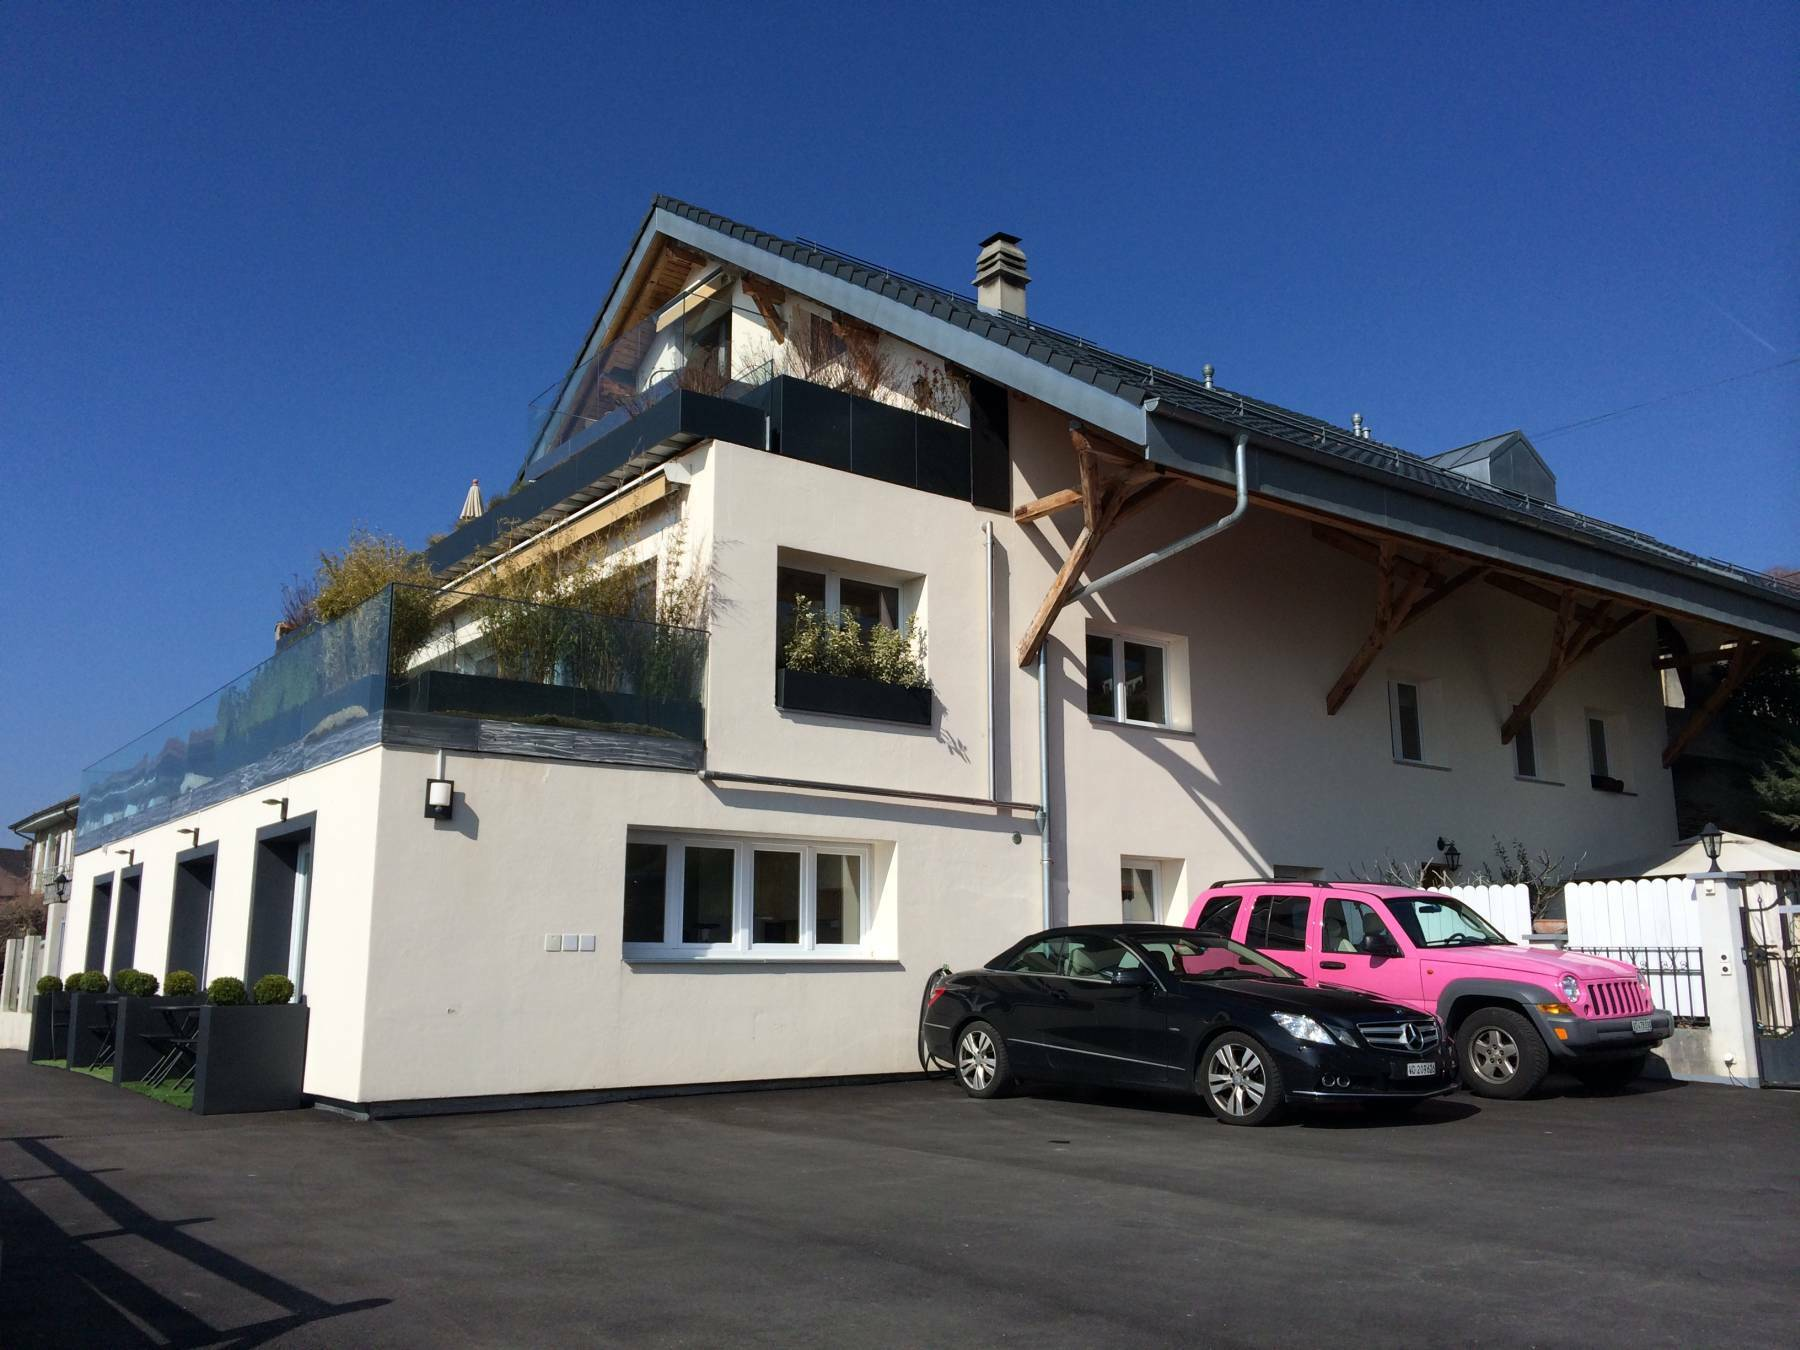 Studio Chanel At 3 Km From Lausanne